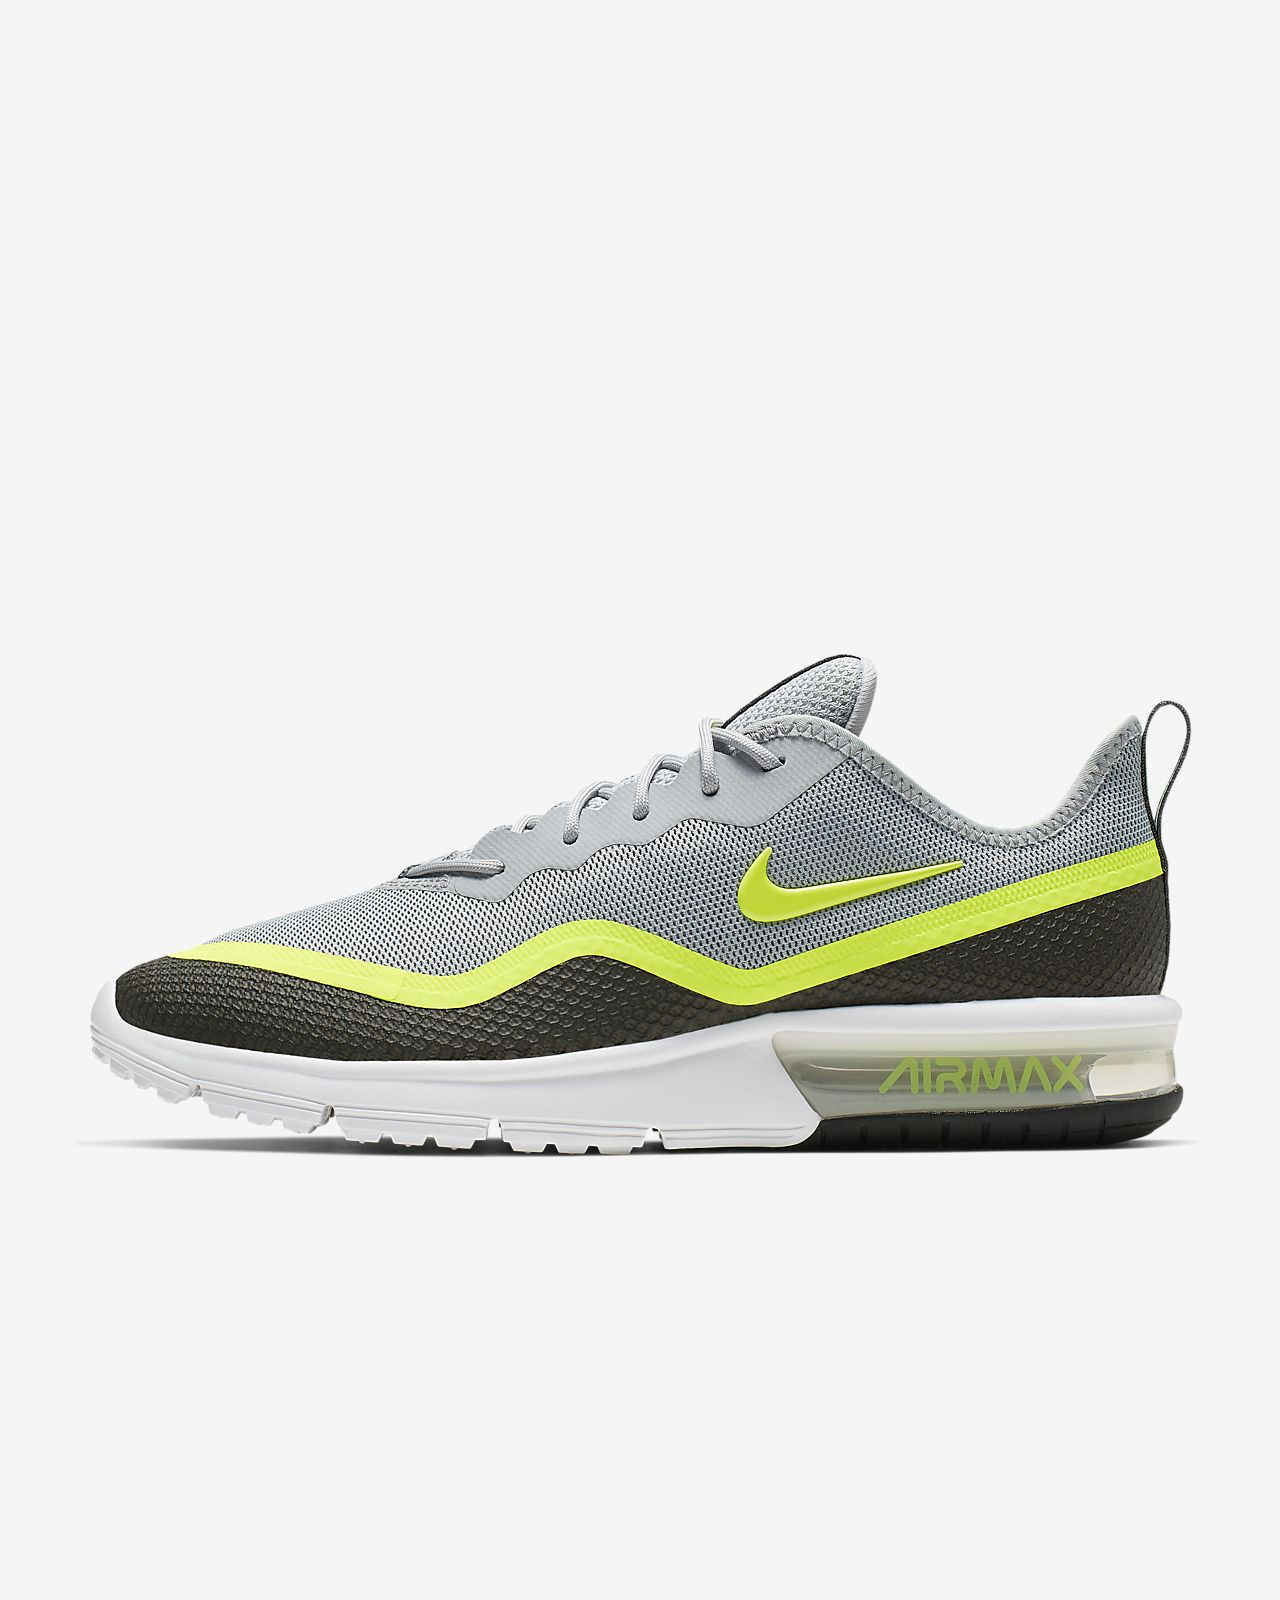 factory price 86016 ed735 ... Nike Air Max Sequent 4.5 SE Herrenschuh